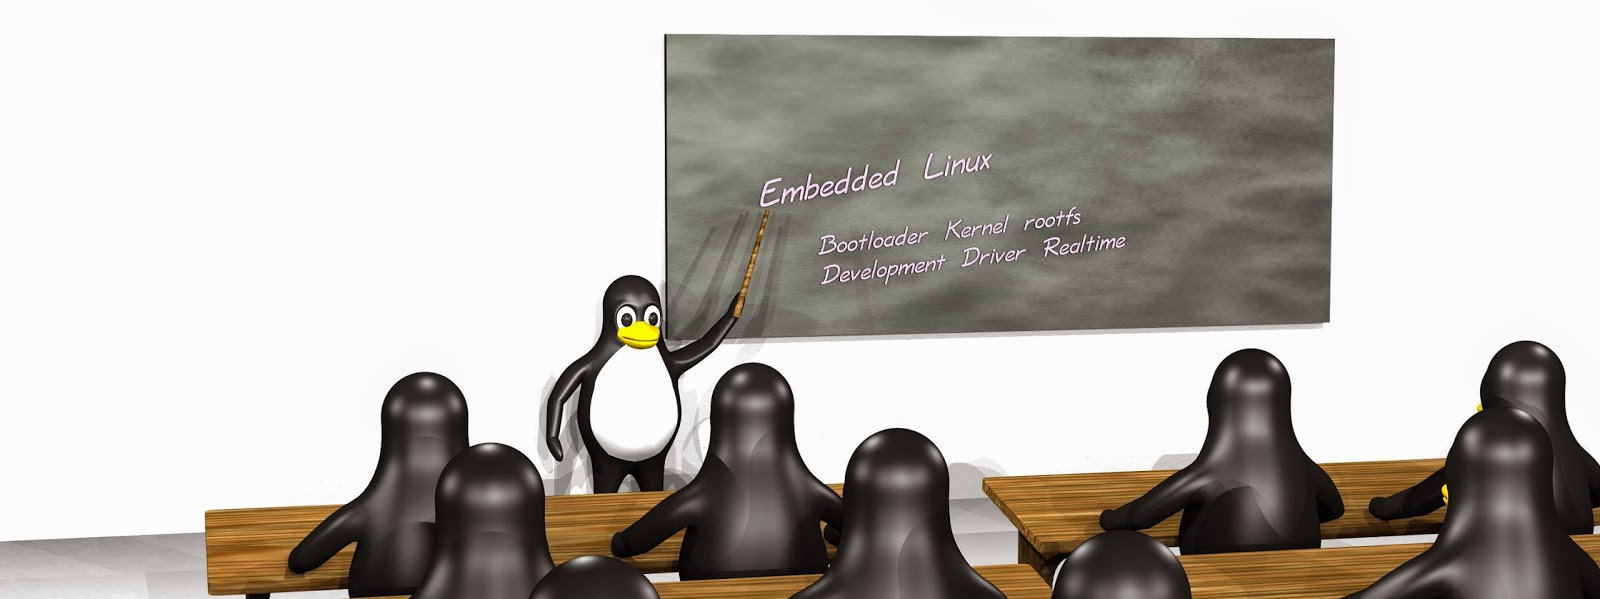 Embedded Linux Systems: First software for Embedded Linux